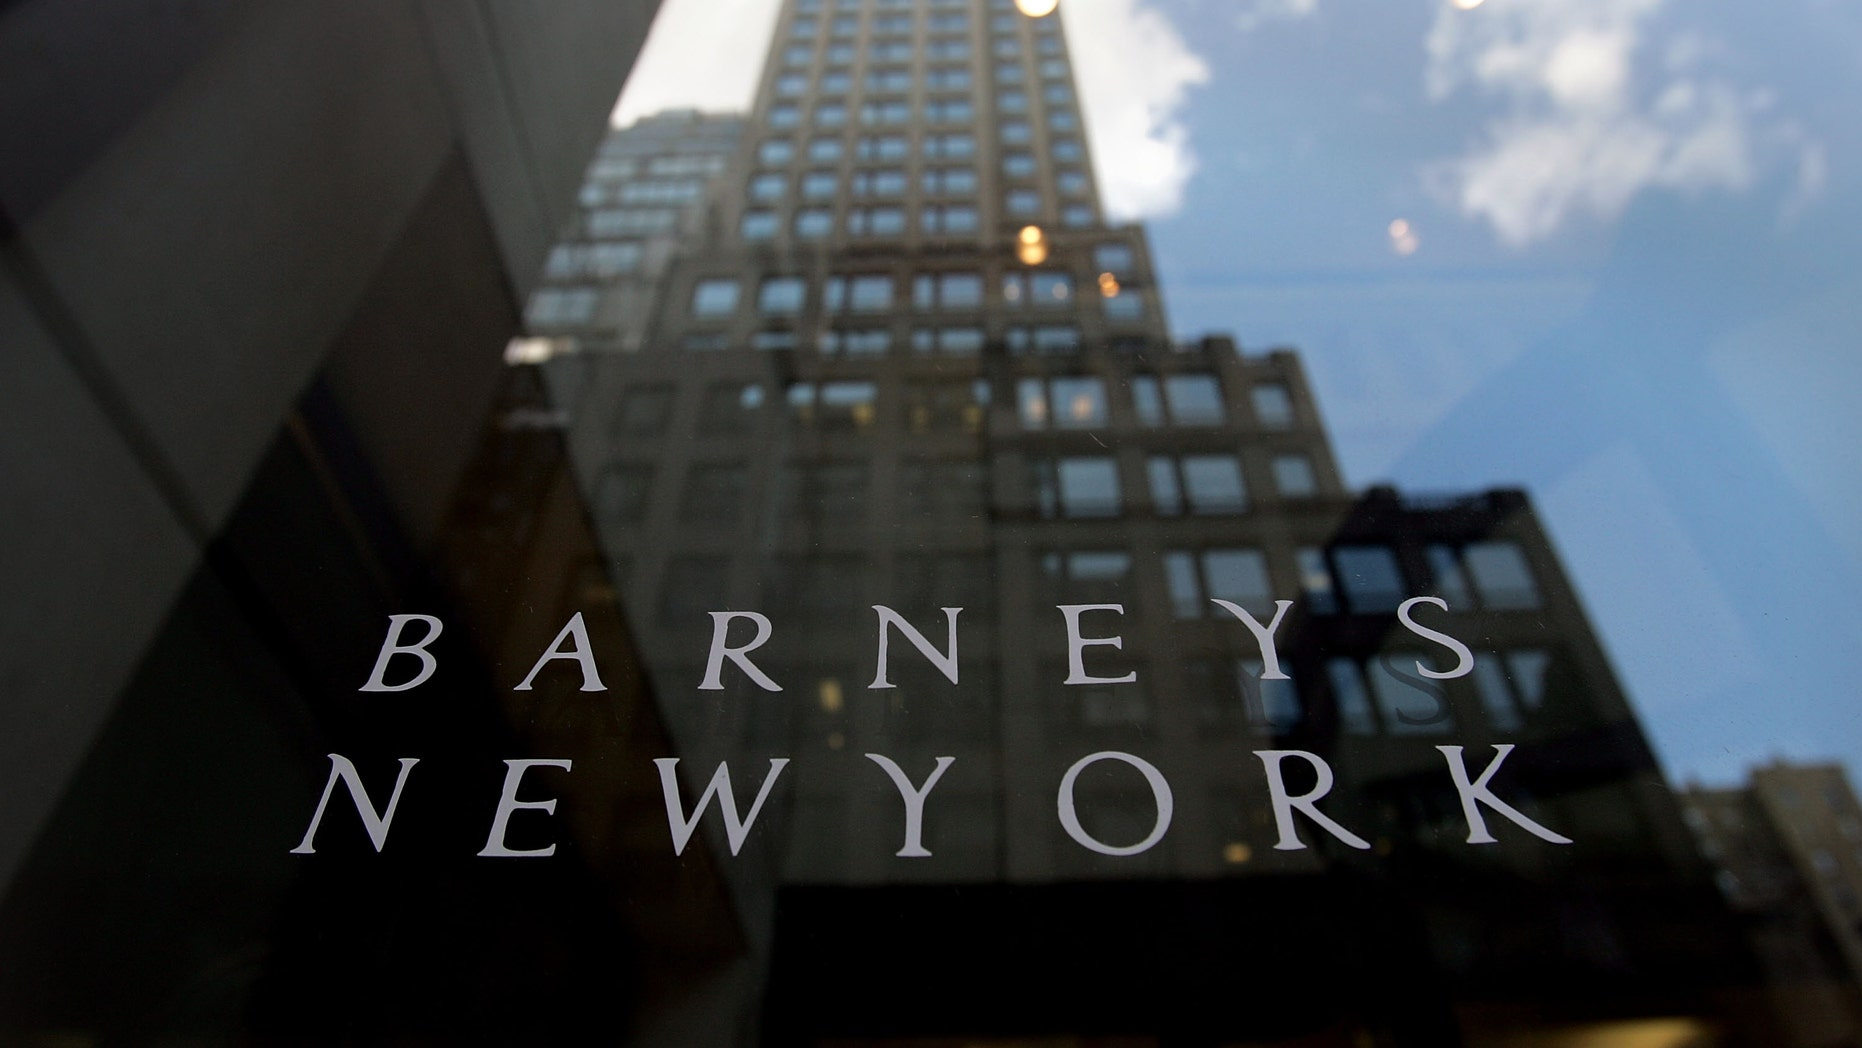 NEW YORK - JUNE 22: A building is reflected in the Barneys New York store window June 22, 2007 in New York City. Jones Apparel Group Inc. plans to sell Barneys New York to the Dubai investment firm Istithmar for $825 million.  (Photo by Mario Tama/Getty Images)